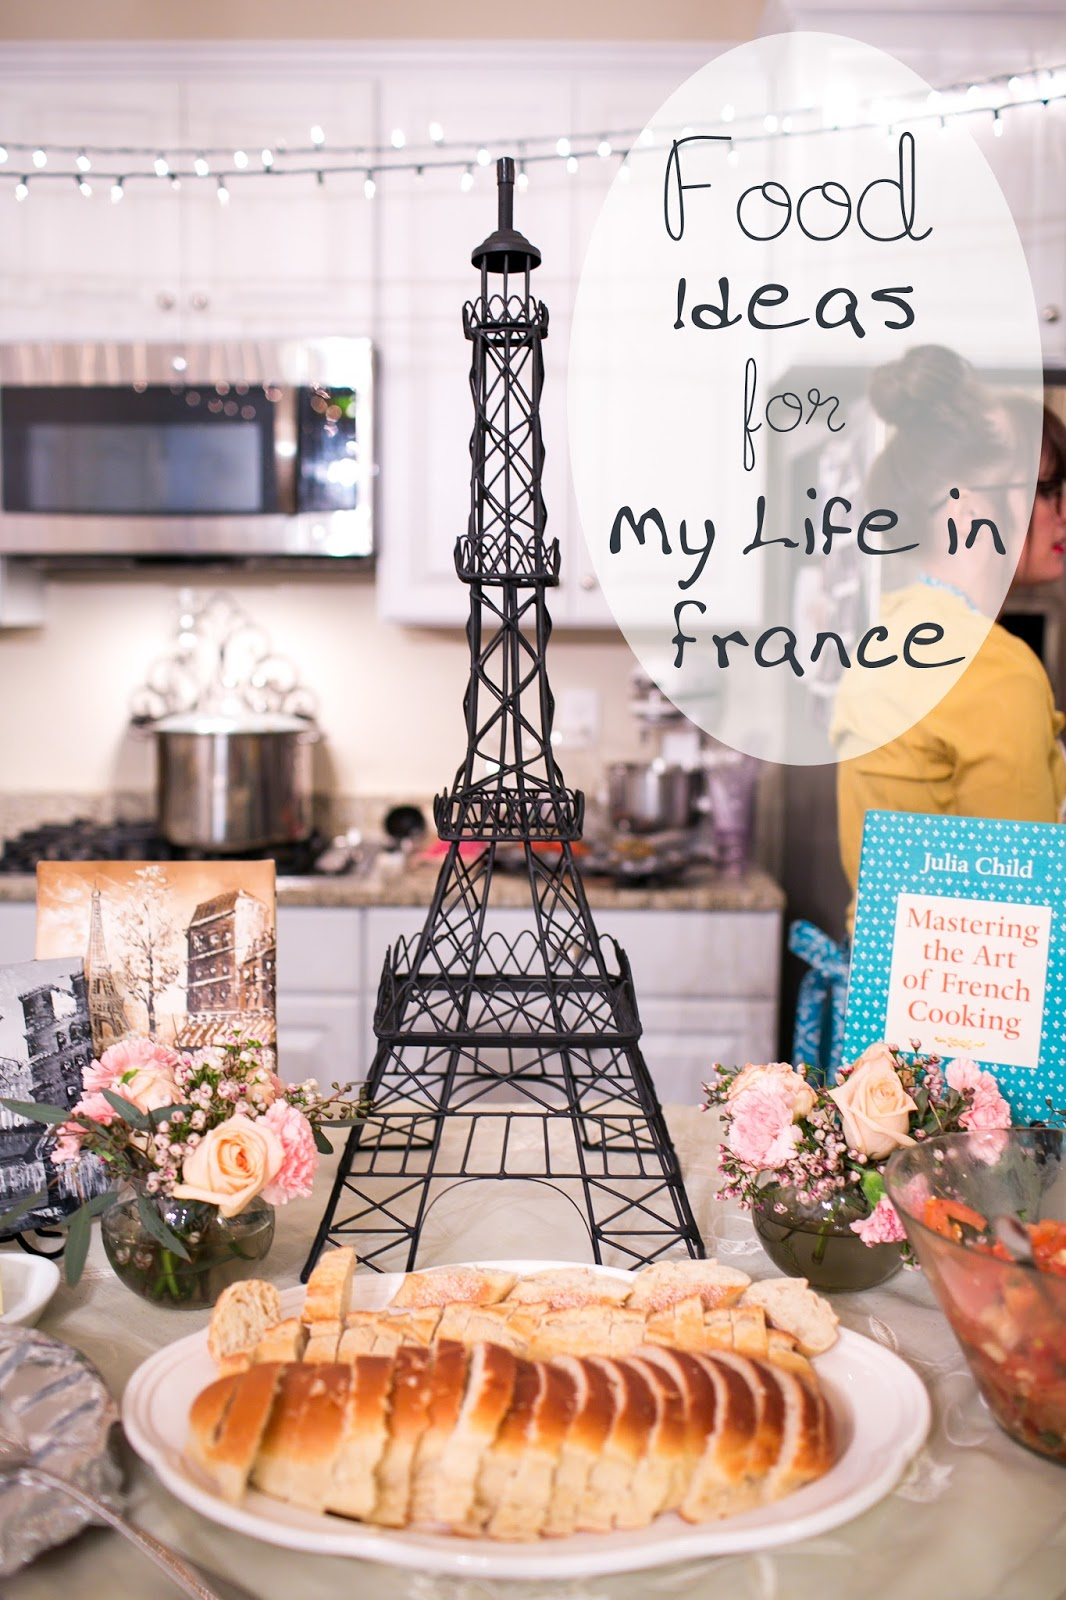 Fun Dinner Party Ideas Part - 47: Delicious Reads Food Ideas For My Life In France Byjulia Child. Paris Party  Food A French Themed Menu ...